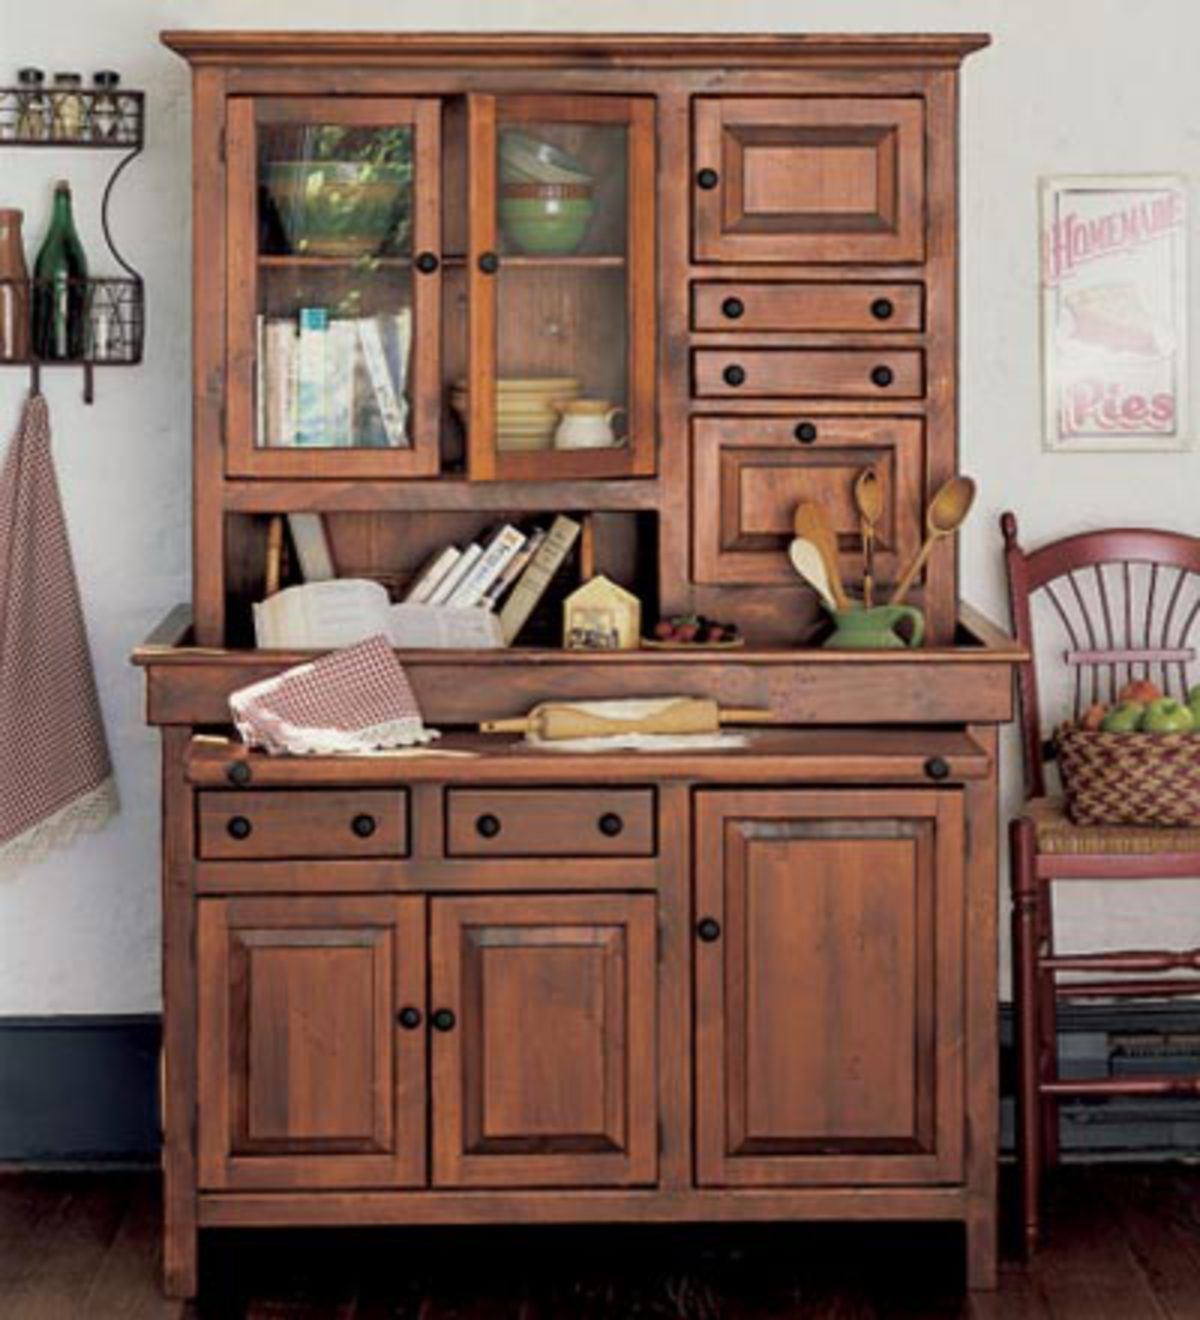 Our American Made Conestoga Cupboard Is Handcrafted With Handy Shelves For Staples And Kitchen Supp In 2020 Glass Cabinet Doors Cupboard Storage Diy Kitchen Renovation